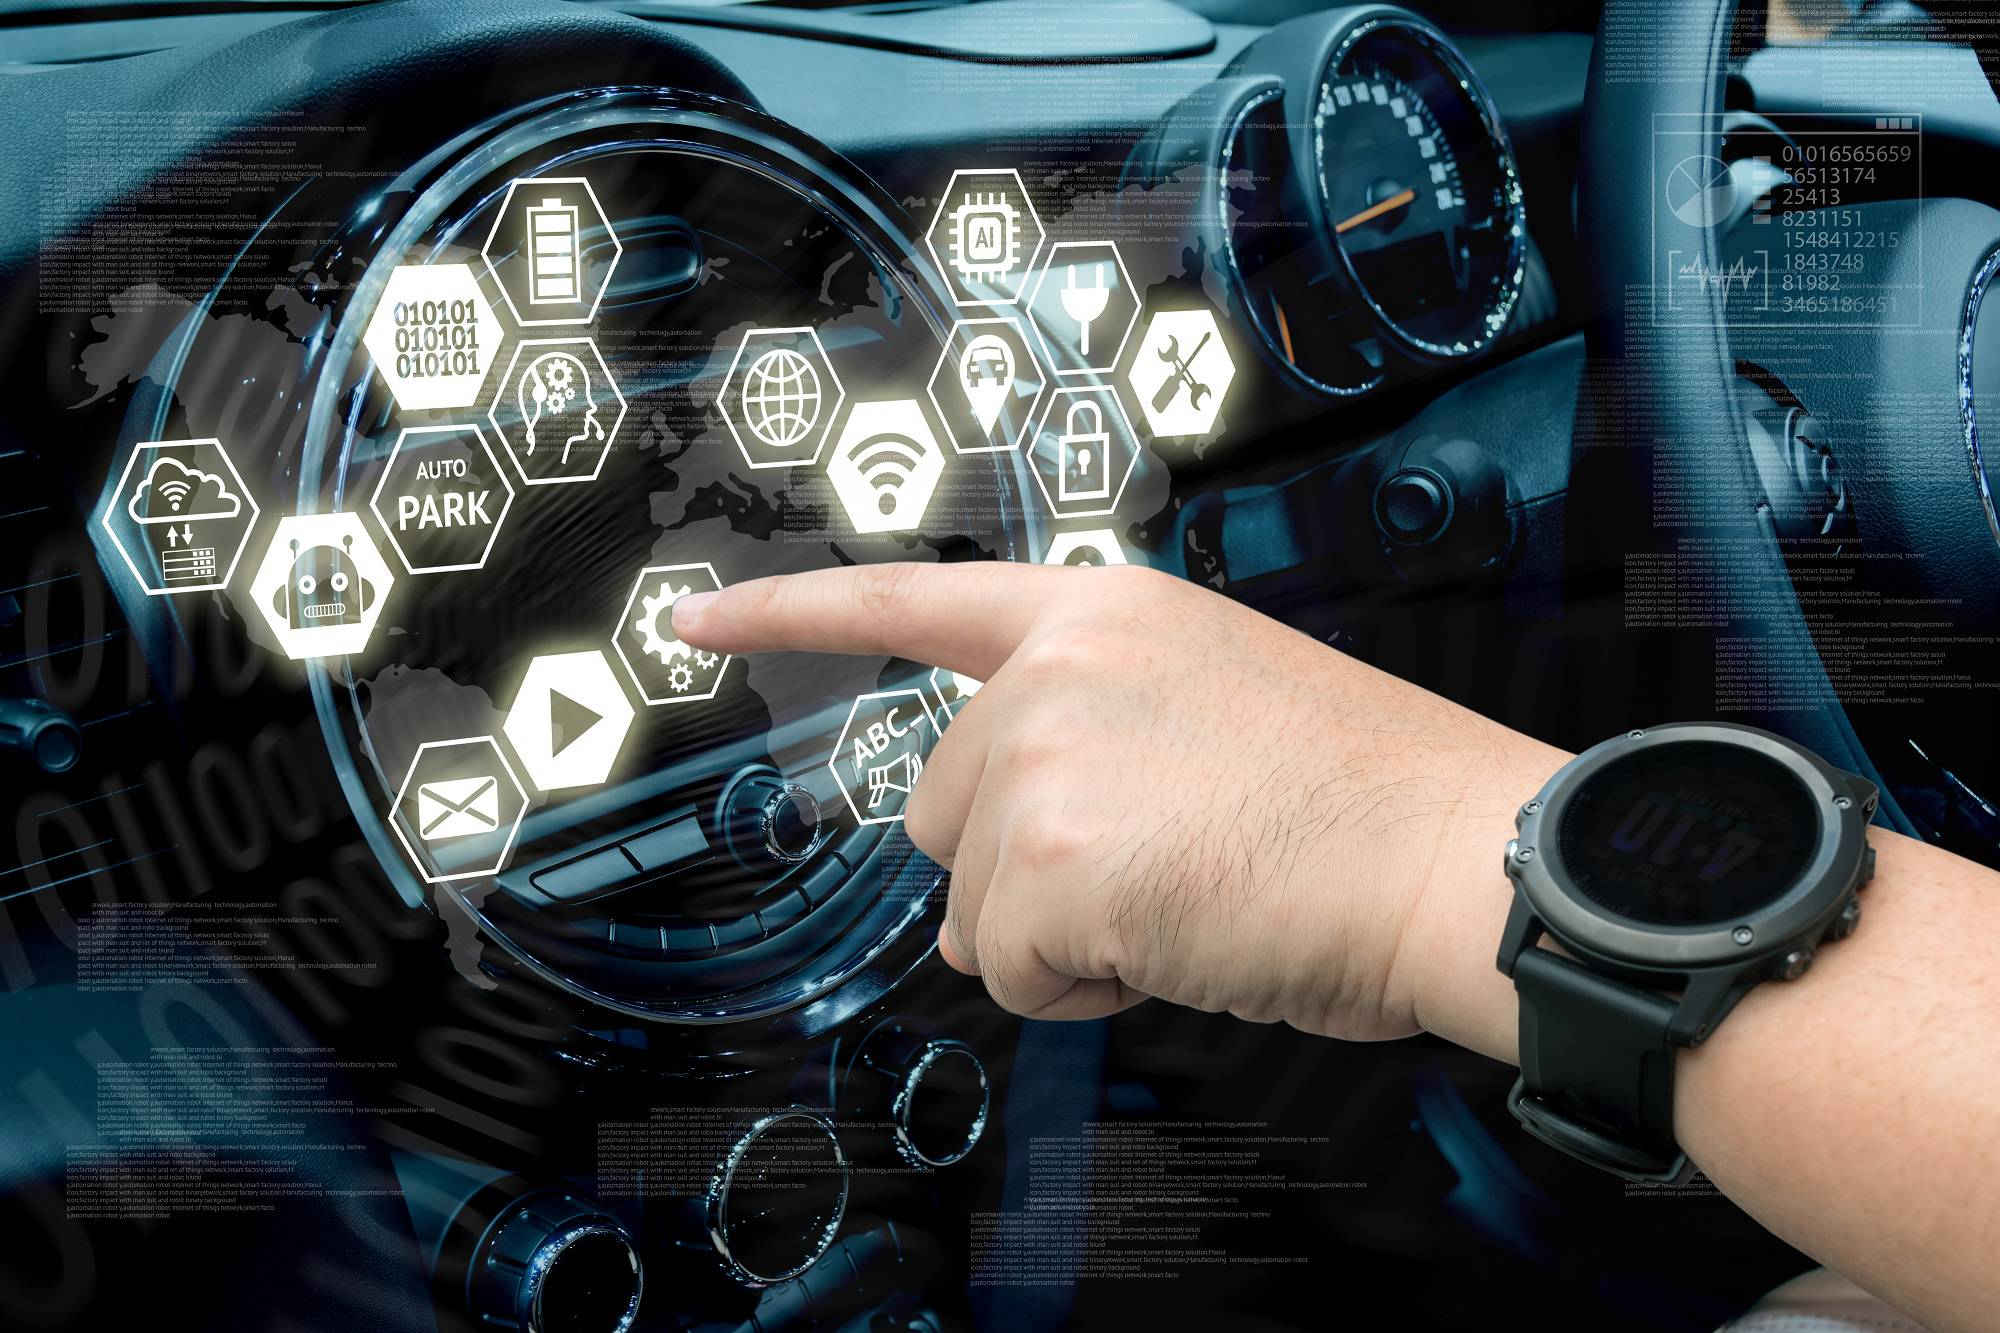 e2f6590958 Questions raised over used car connection security